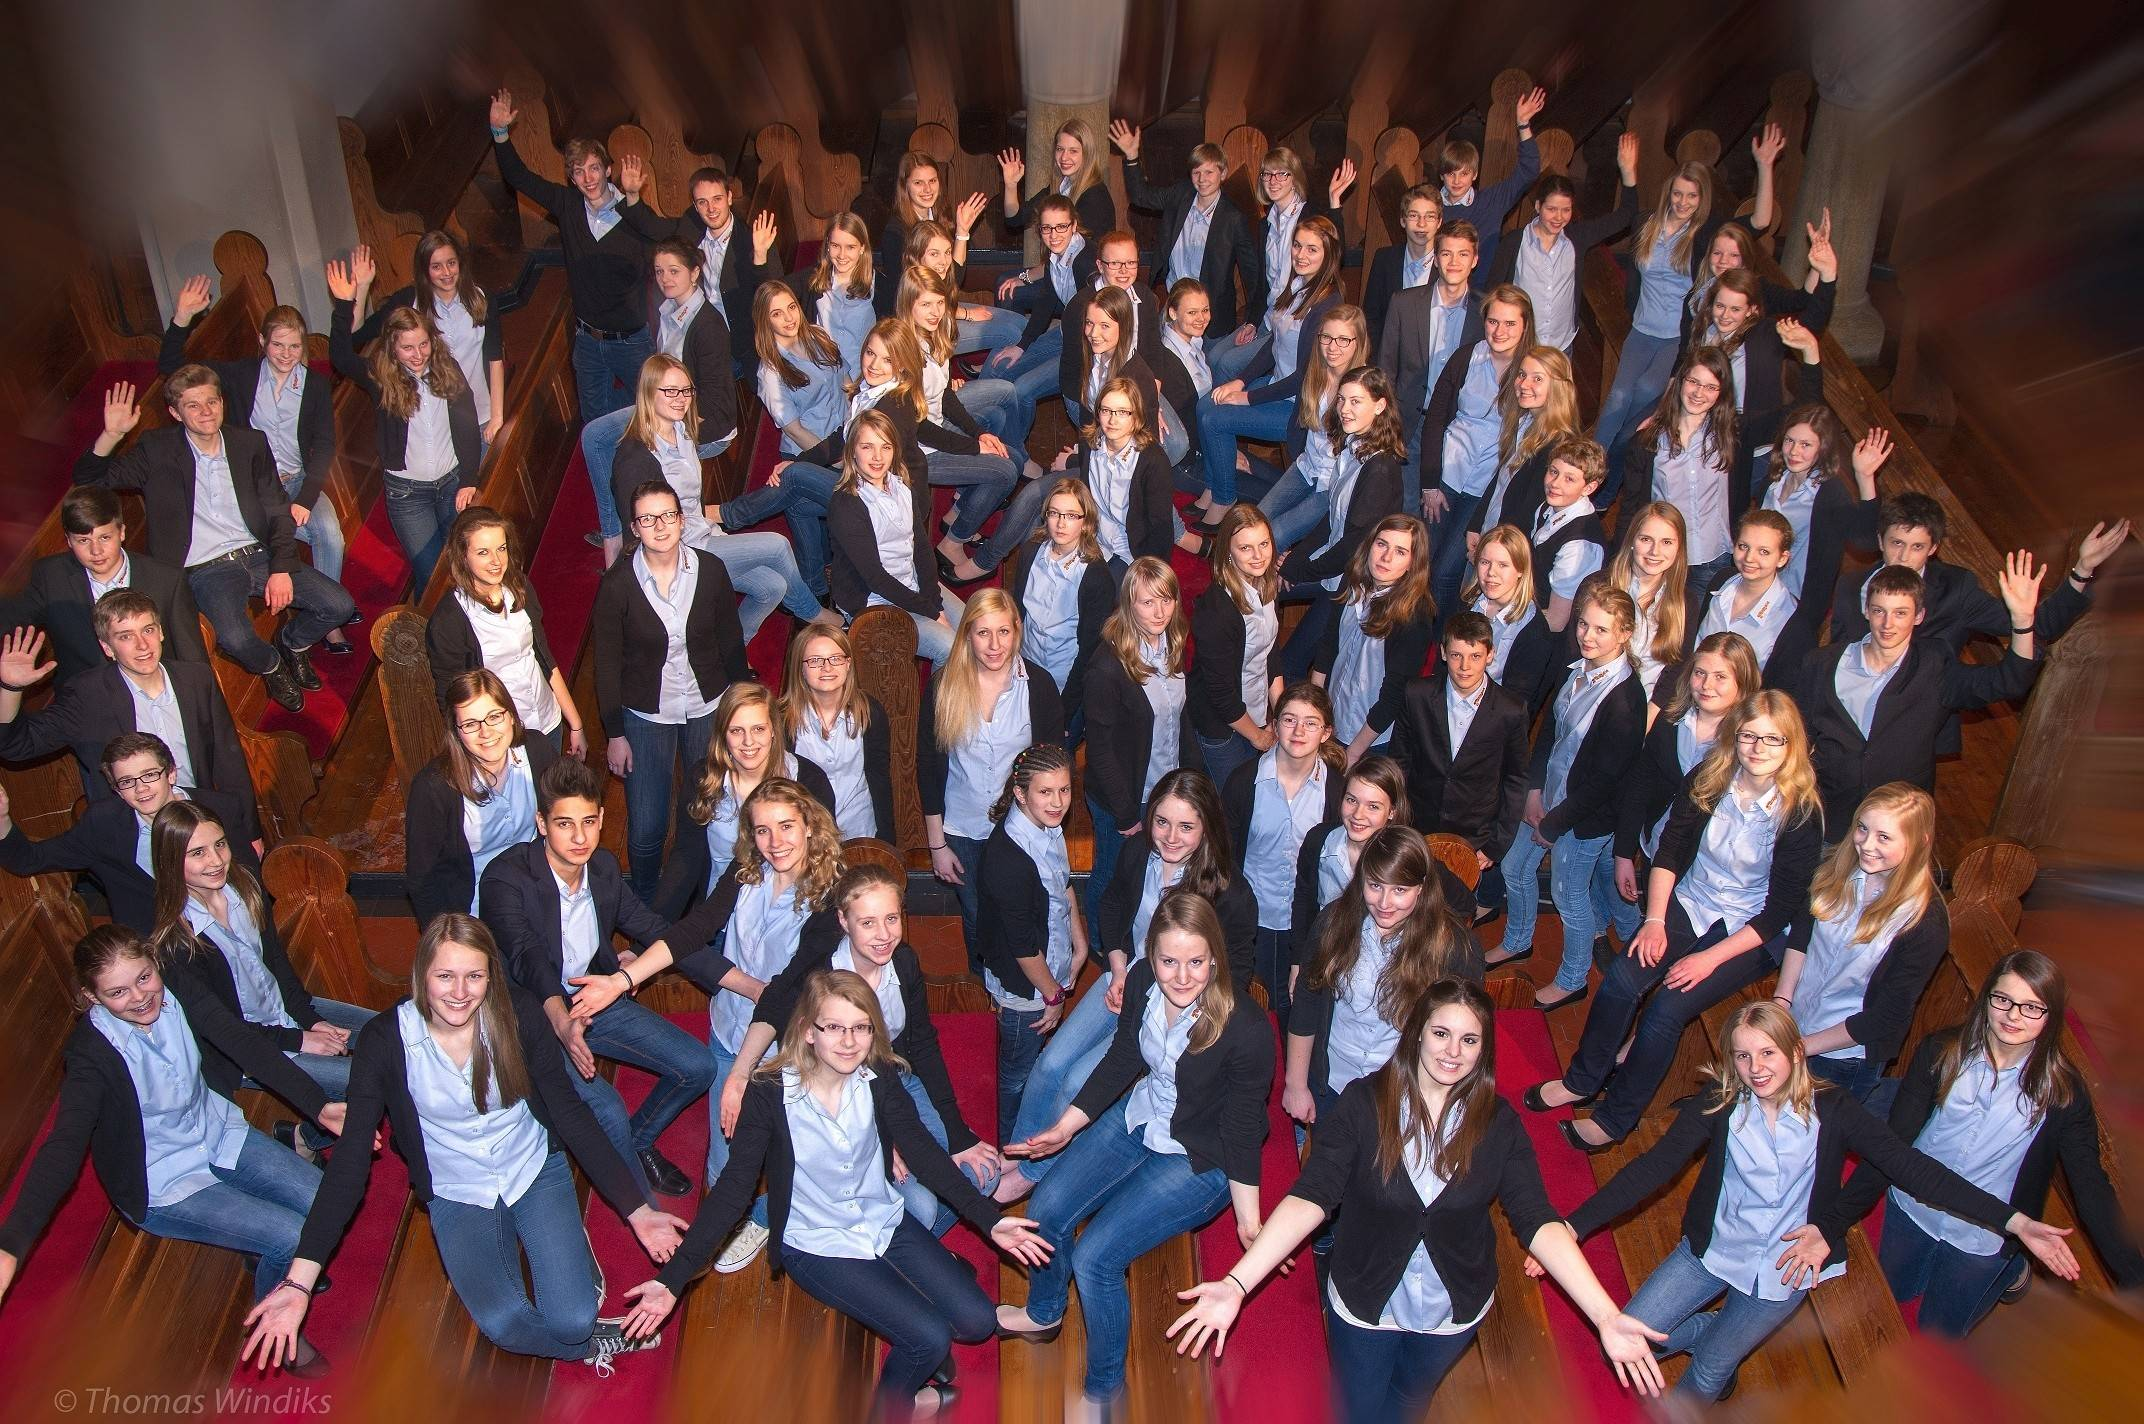 Tookula, a 60-voice student choir from Germany, will visit St. Charles this week and perform two free concerts.